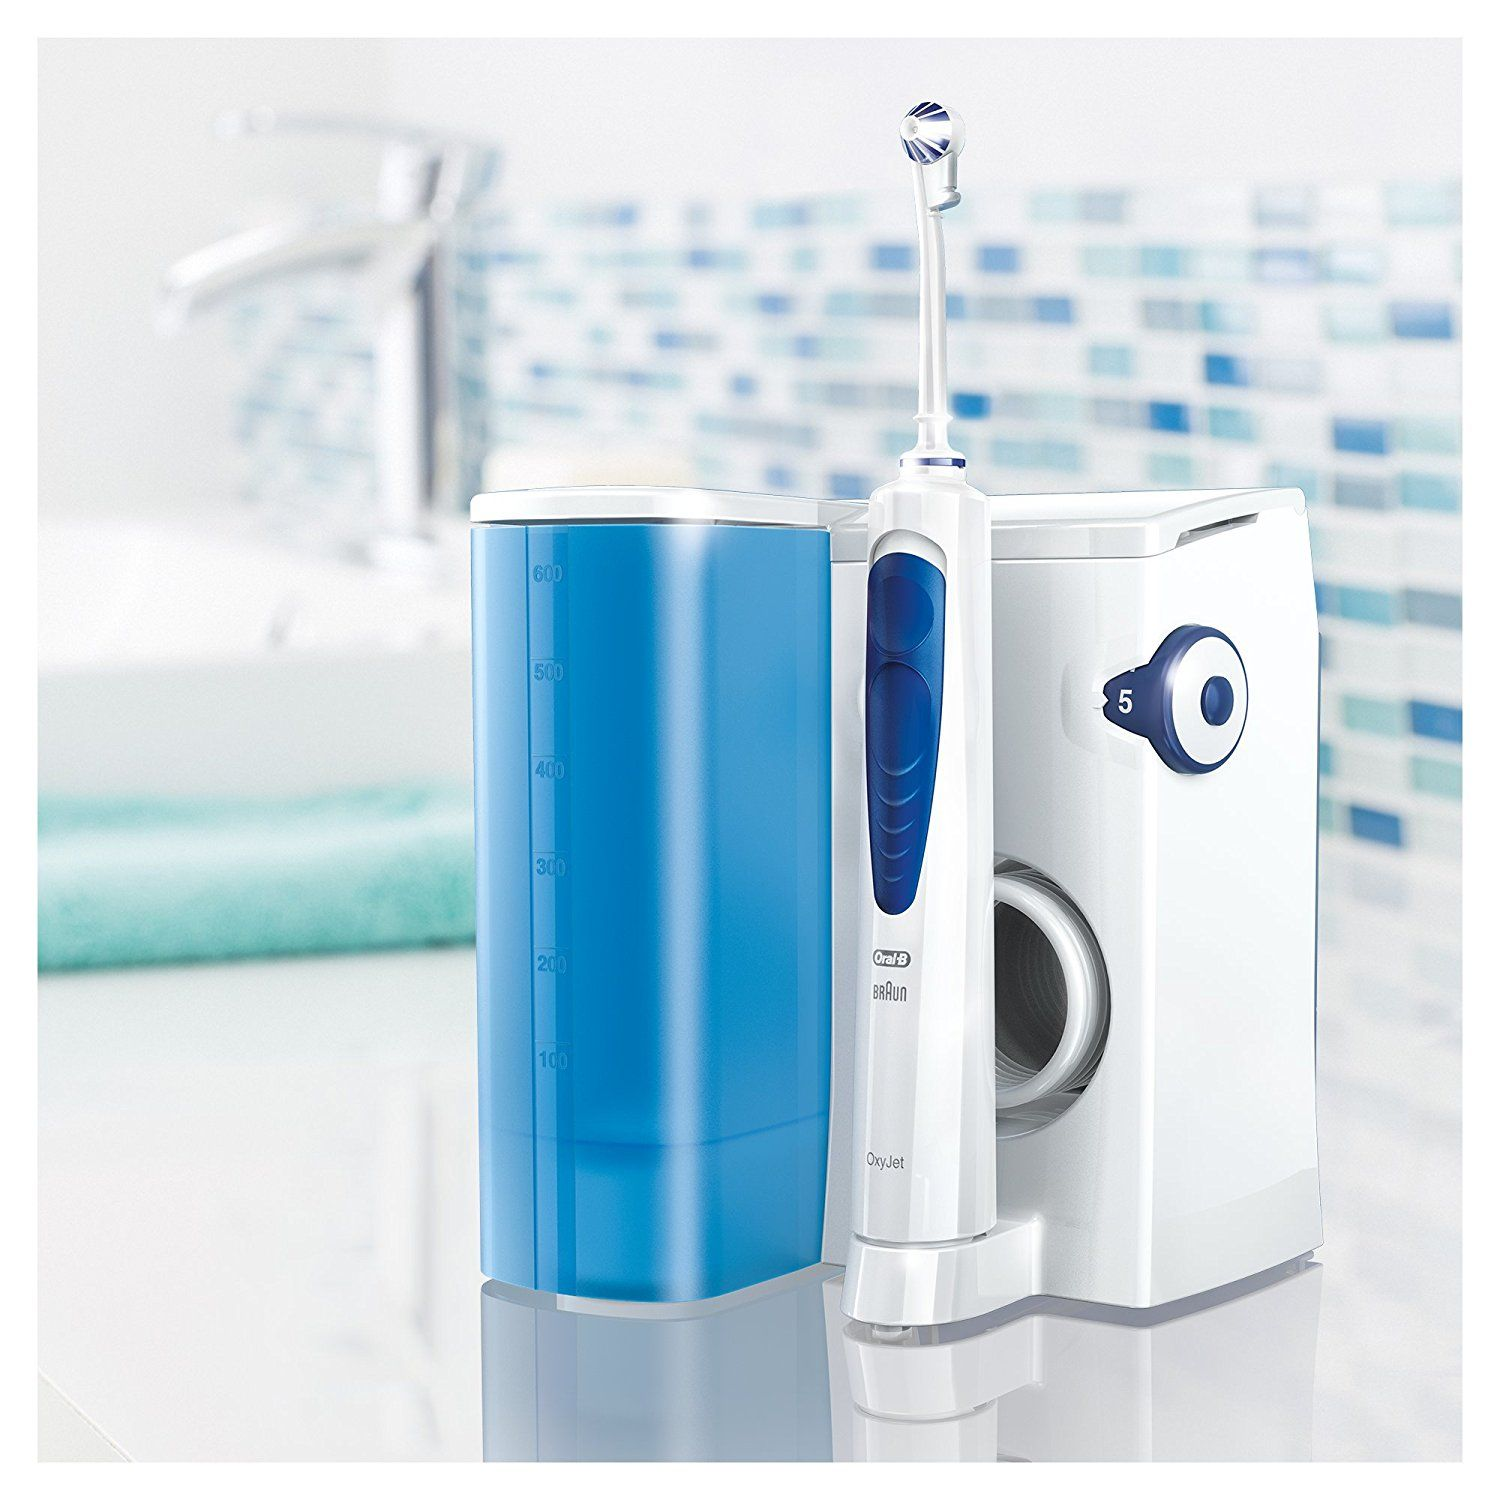 irrigador dental oral b -gangas amazon